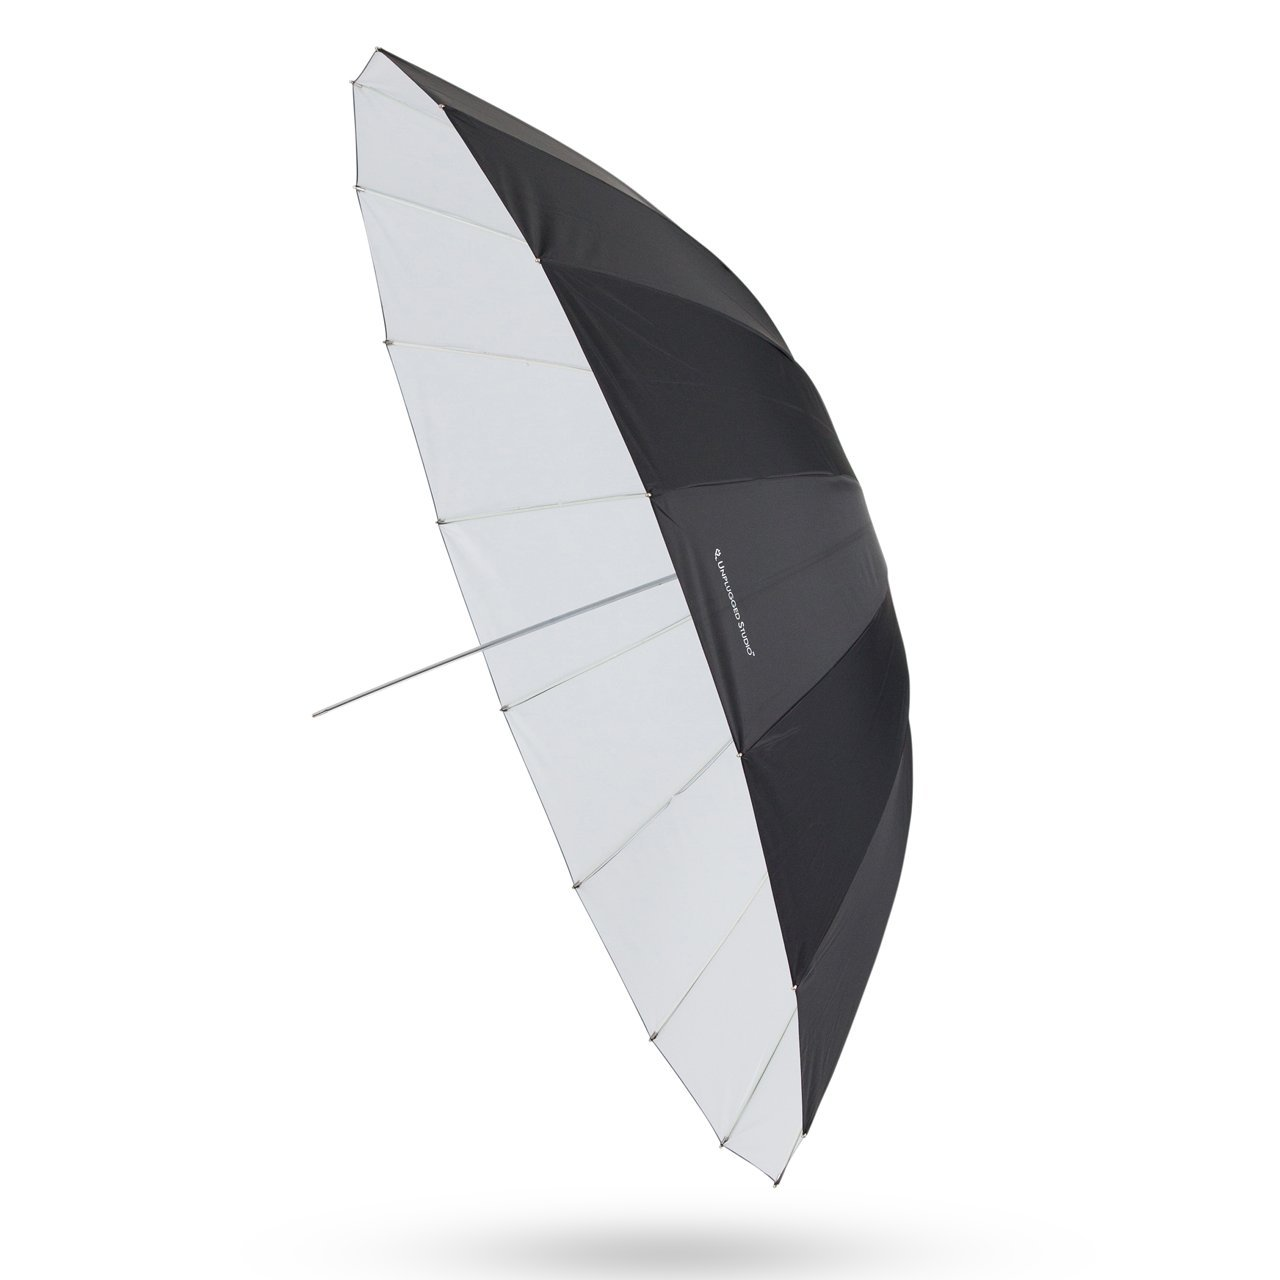 UNPLUGGED STUDIO 60inch White Umbrella (16 Fiberglass Ribs)